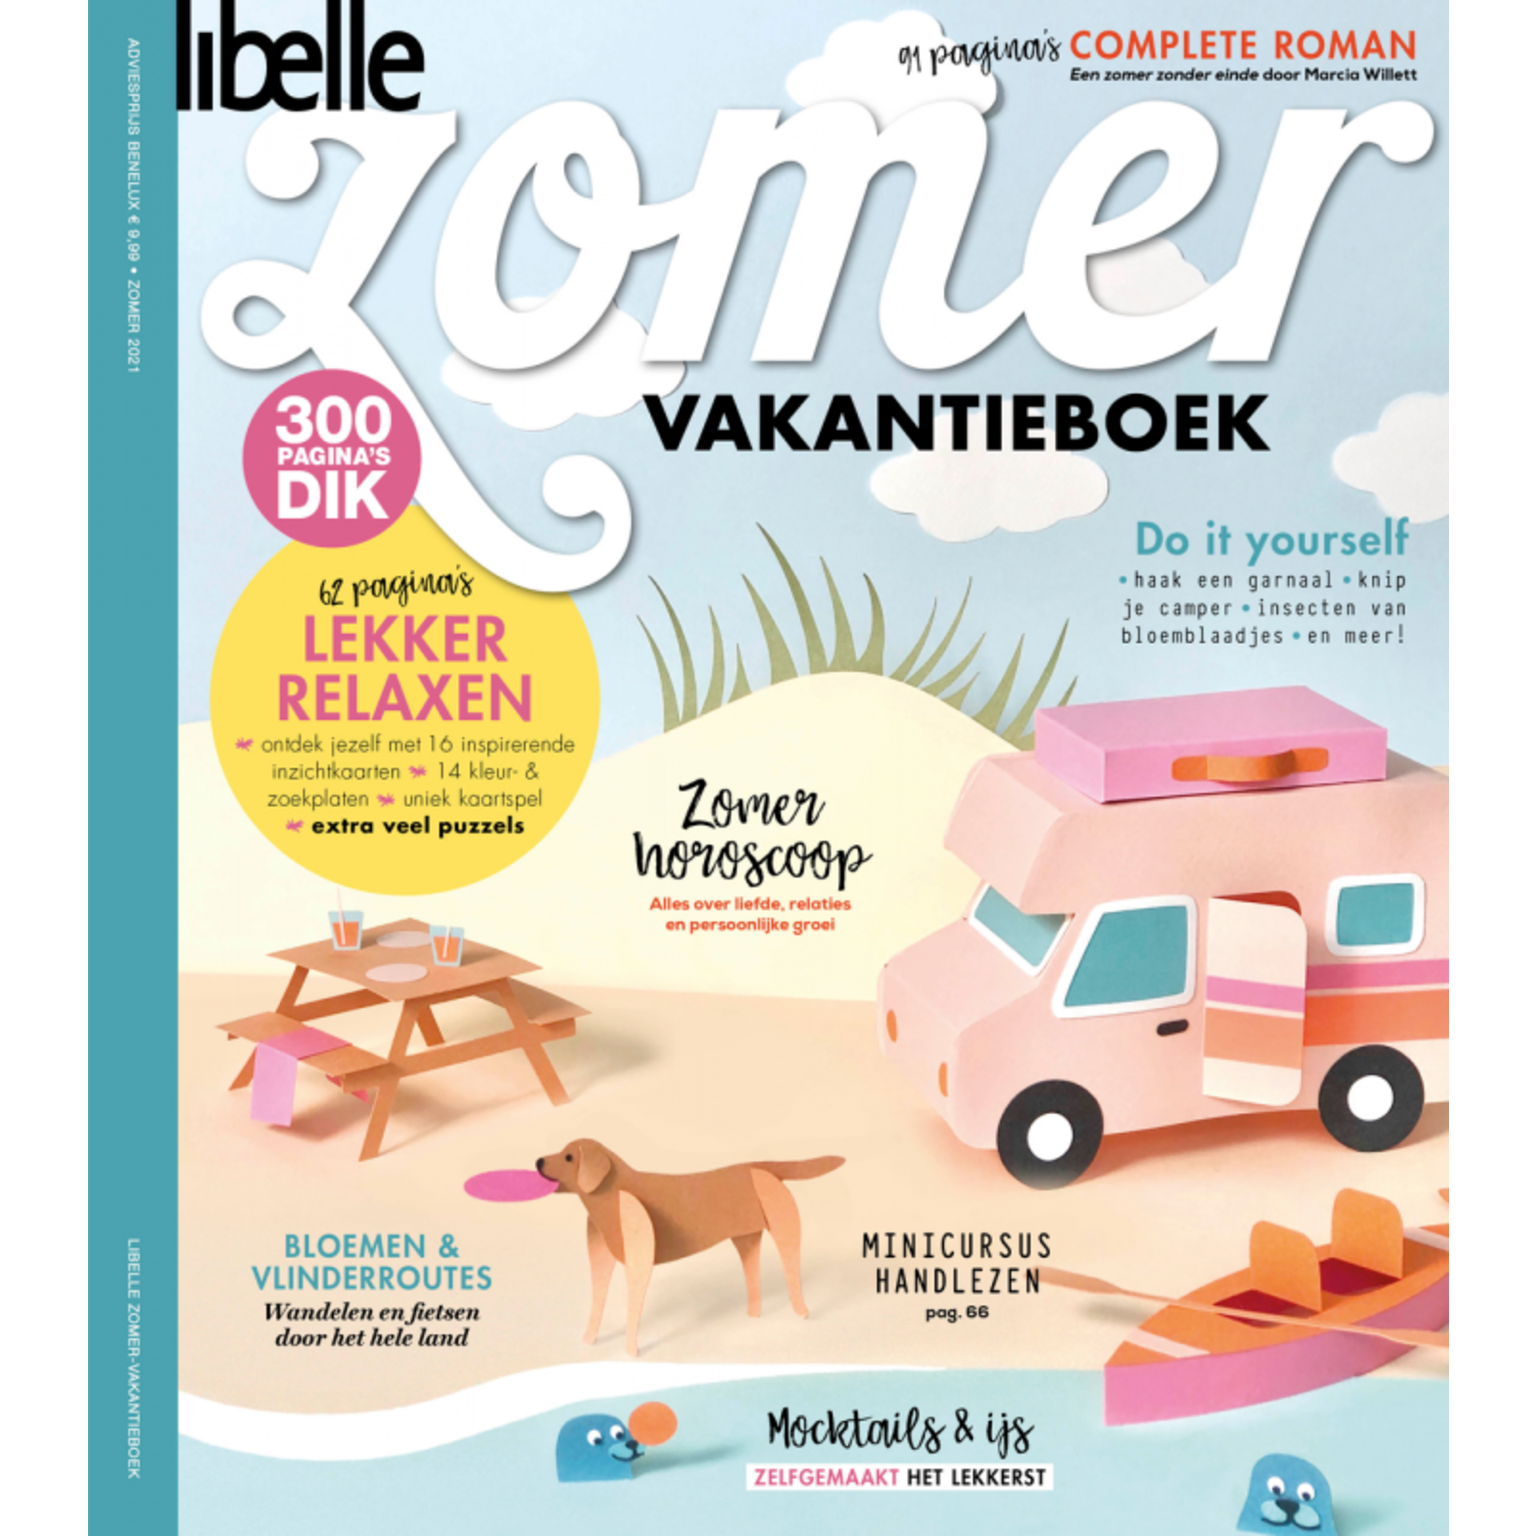 Libelle Zomerspecial